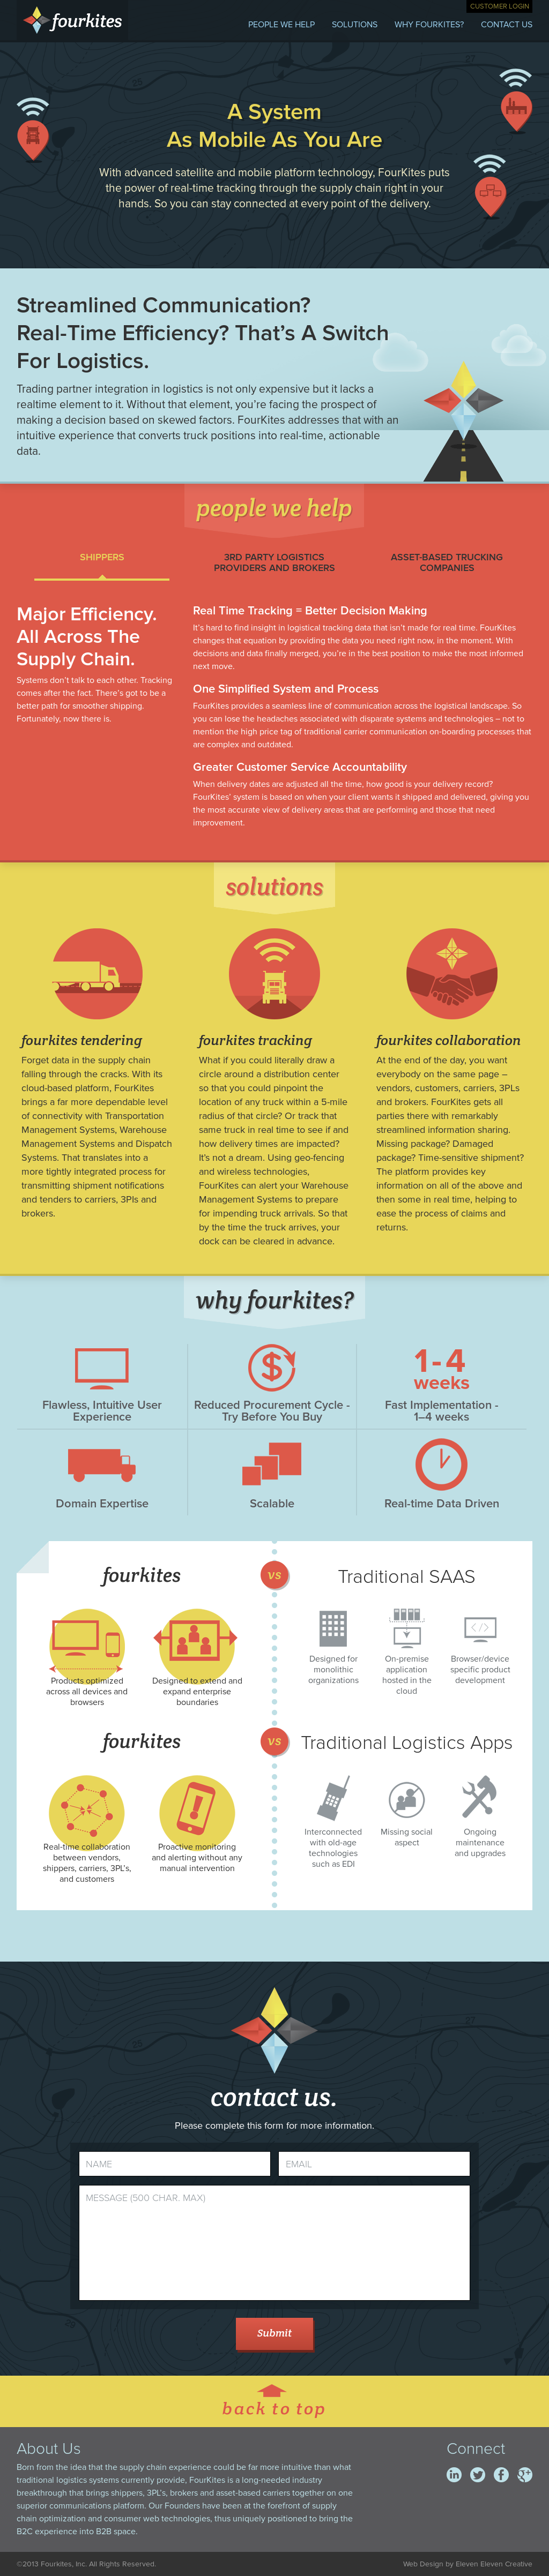 Fourkites Competitors, Revenue and Employees - Owler Company